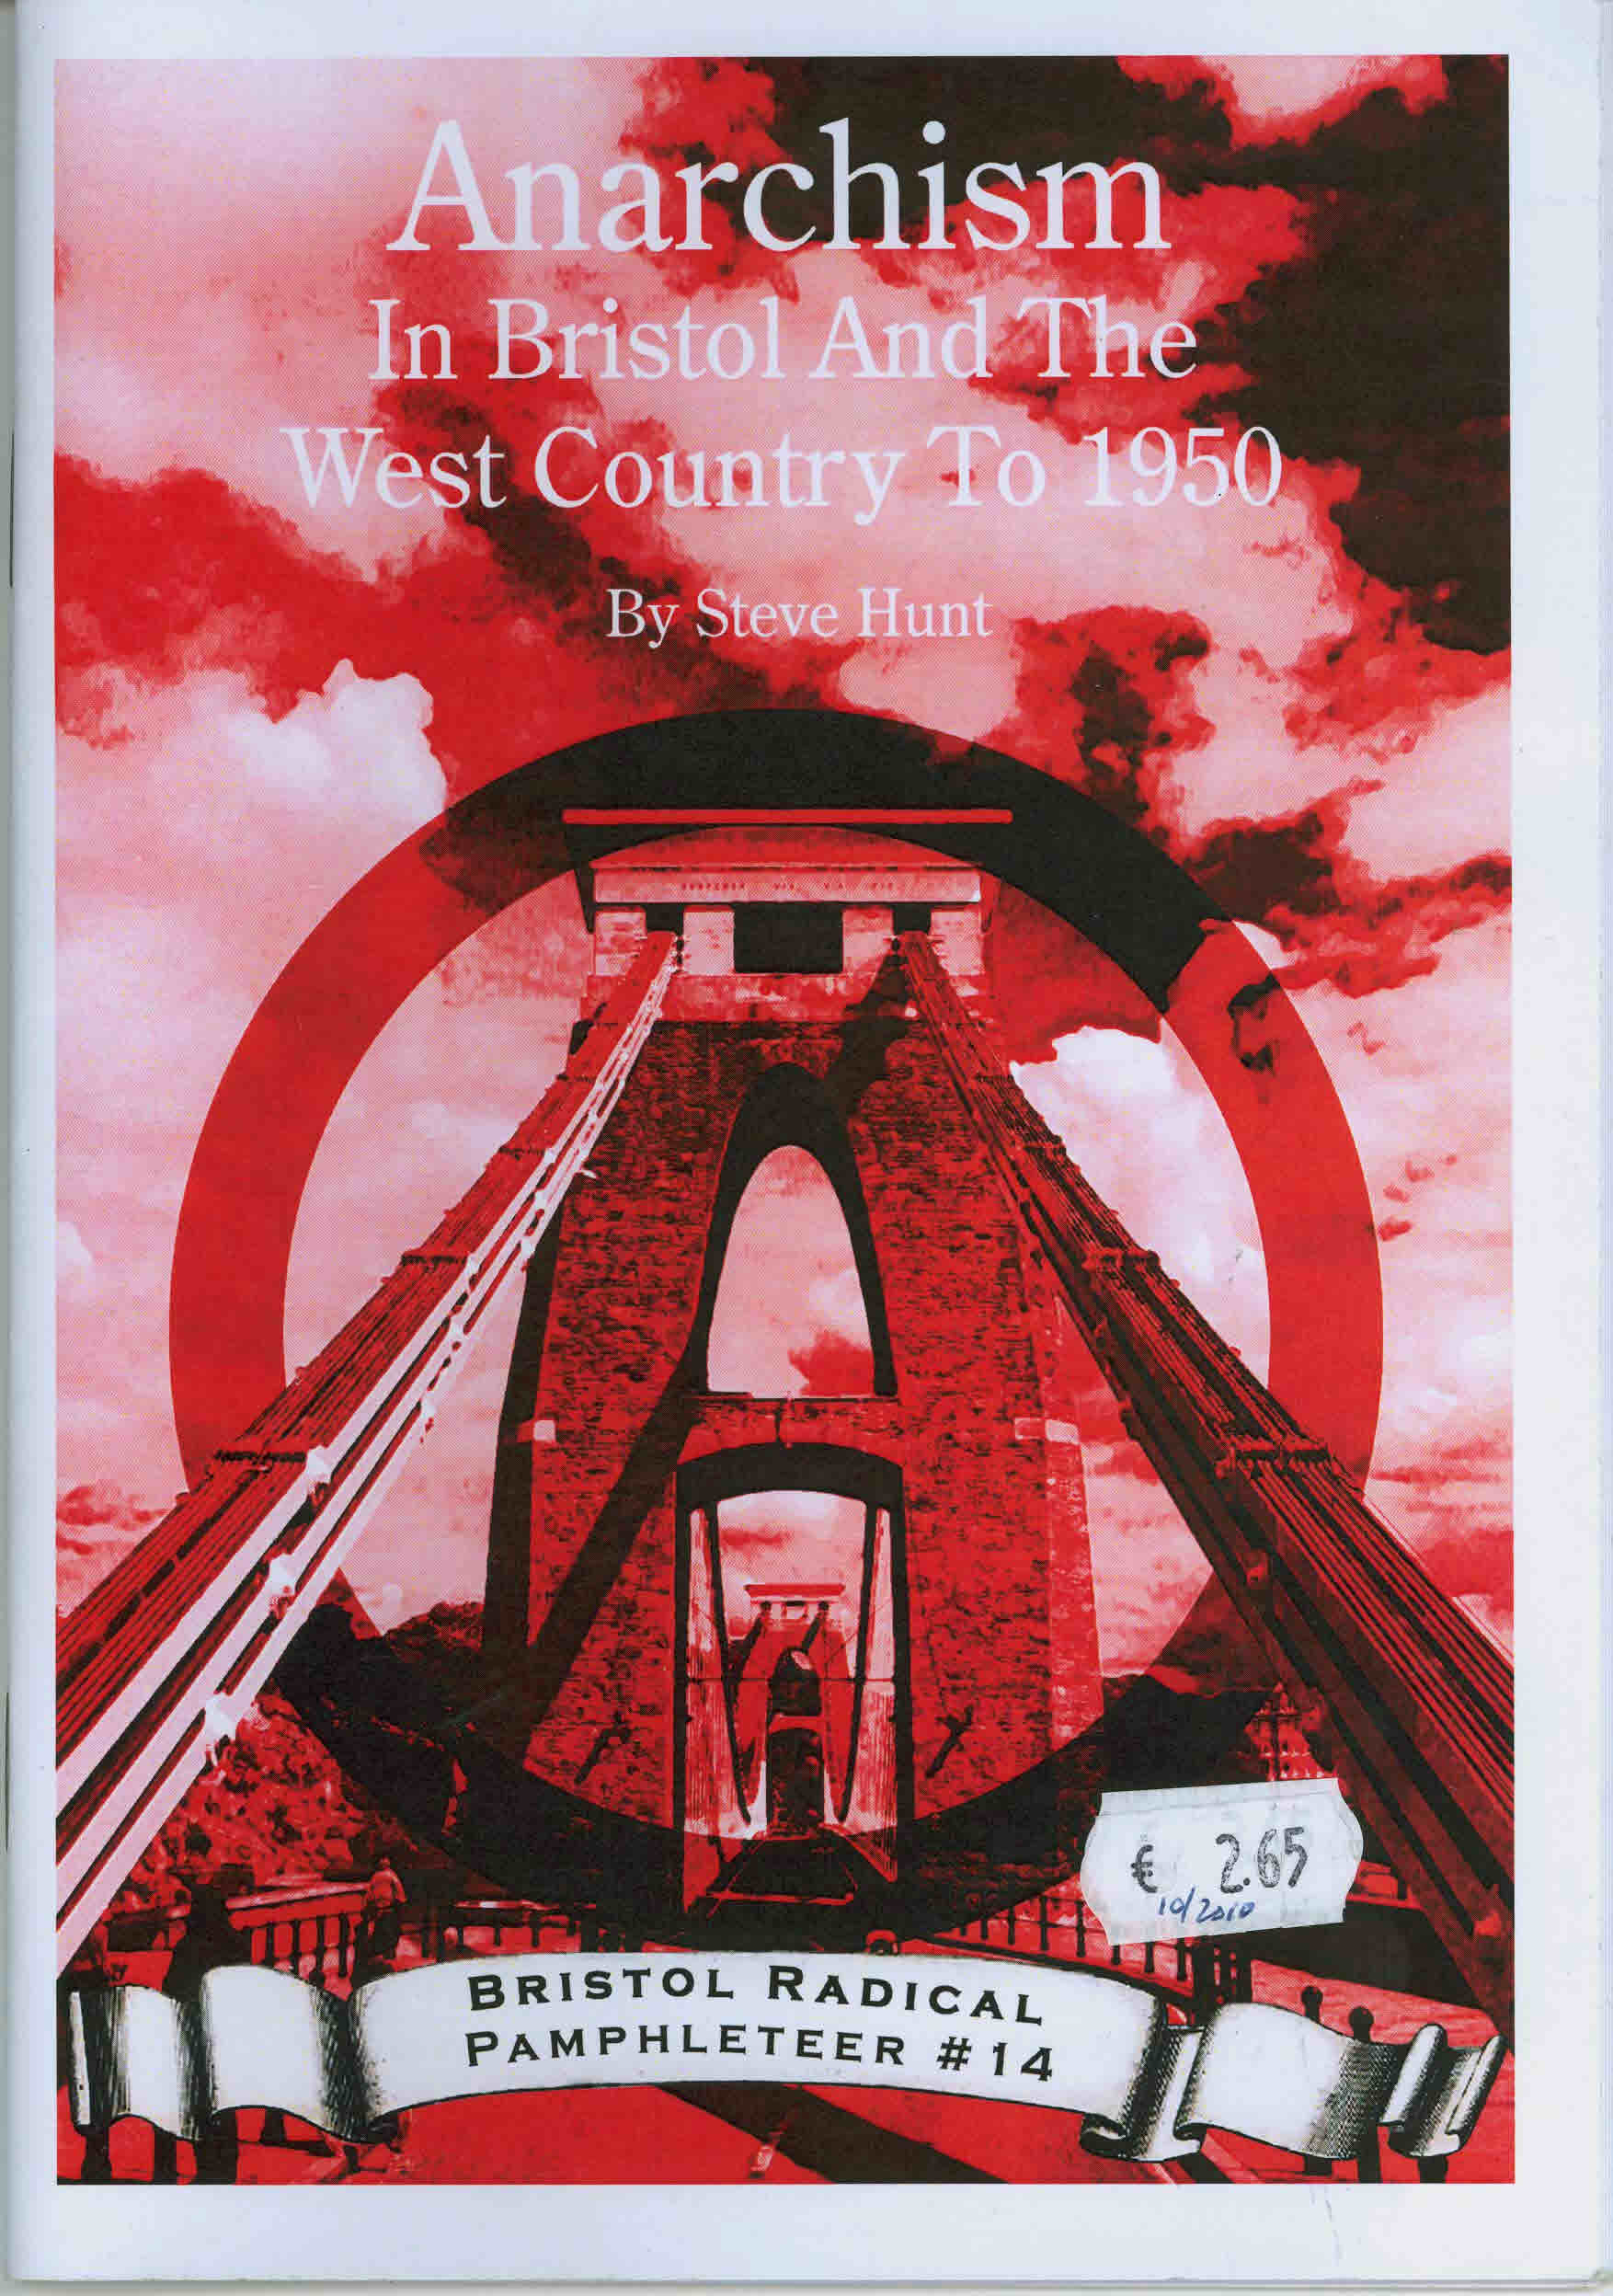 Anarchism in Bristol and the West Couintry to 1950